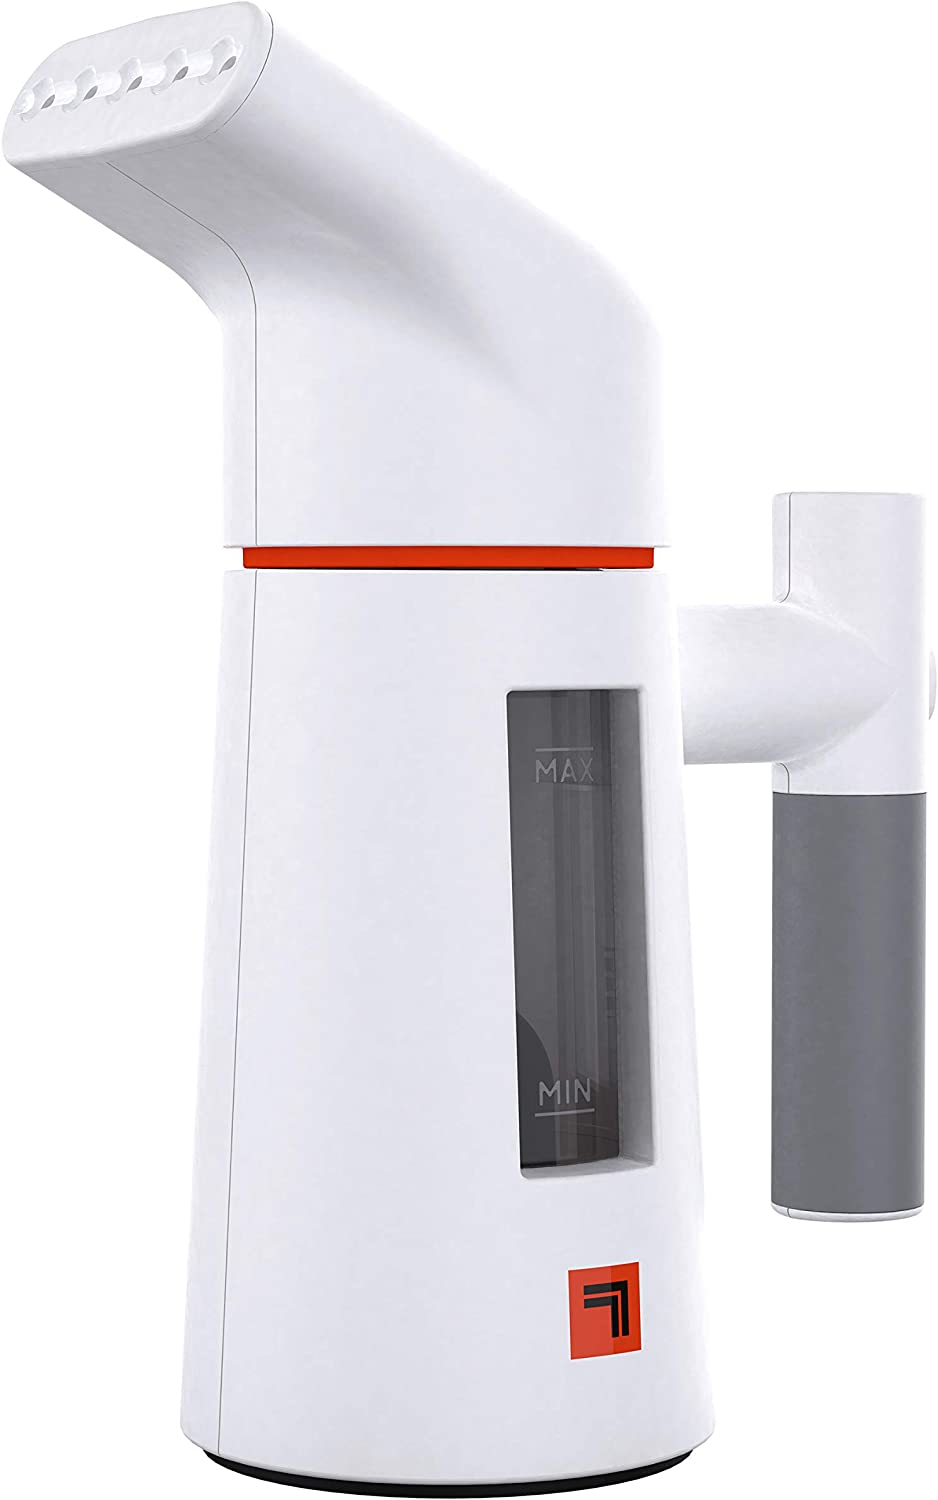 Sharper Image SI-428 Handheld Garment Steamer for Clothes, Curtains, Fabric, and Travel, White